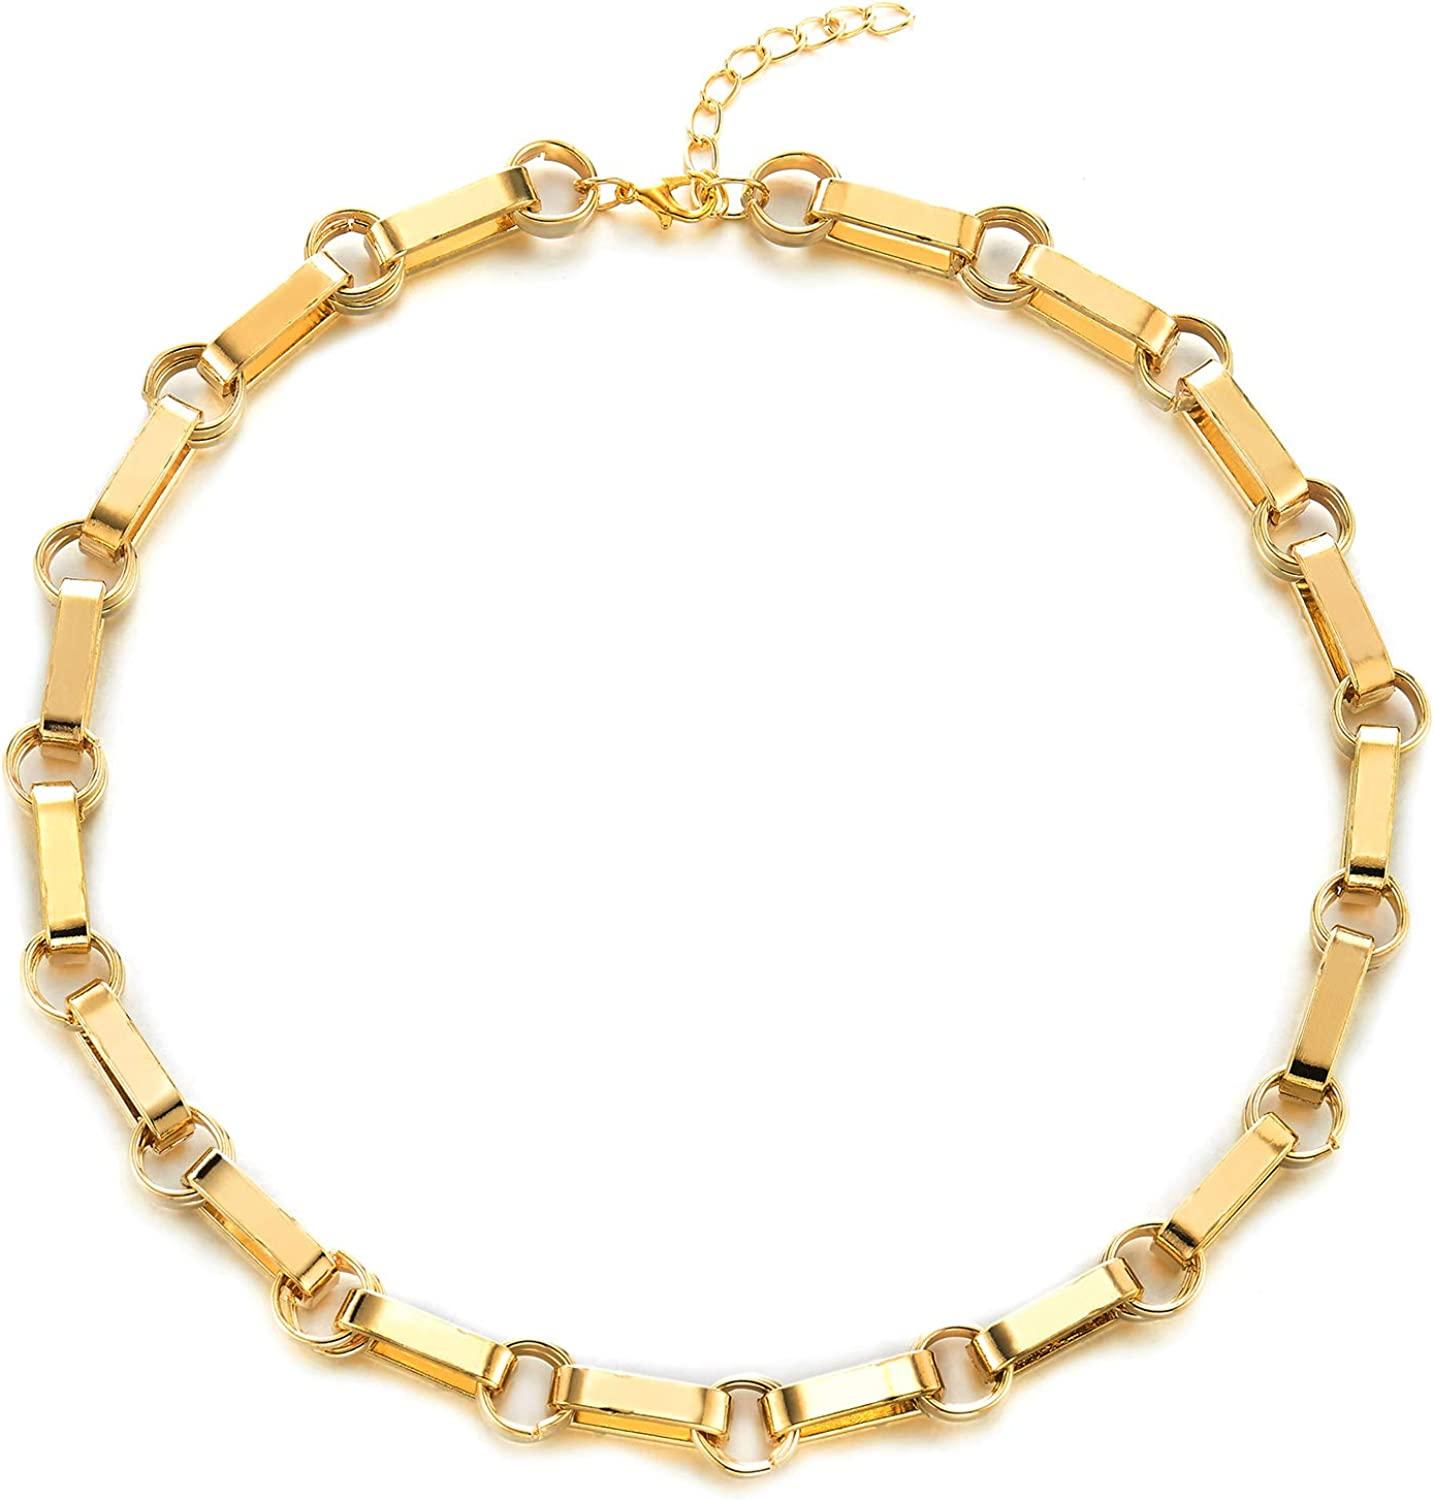 Large Gold Color Choker Collar Statement Necklace, Double Circles Oval Link Chain, Light Weight